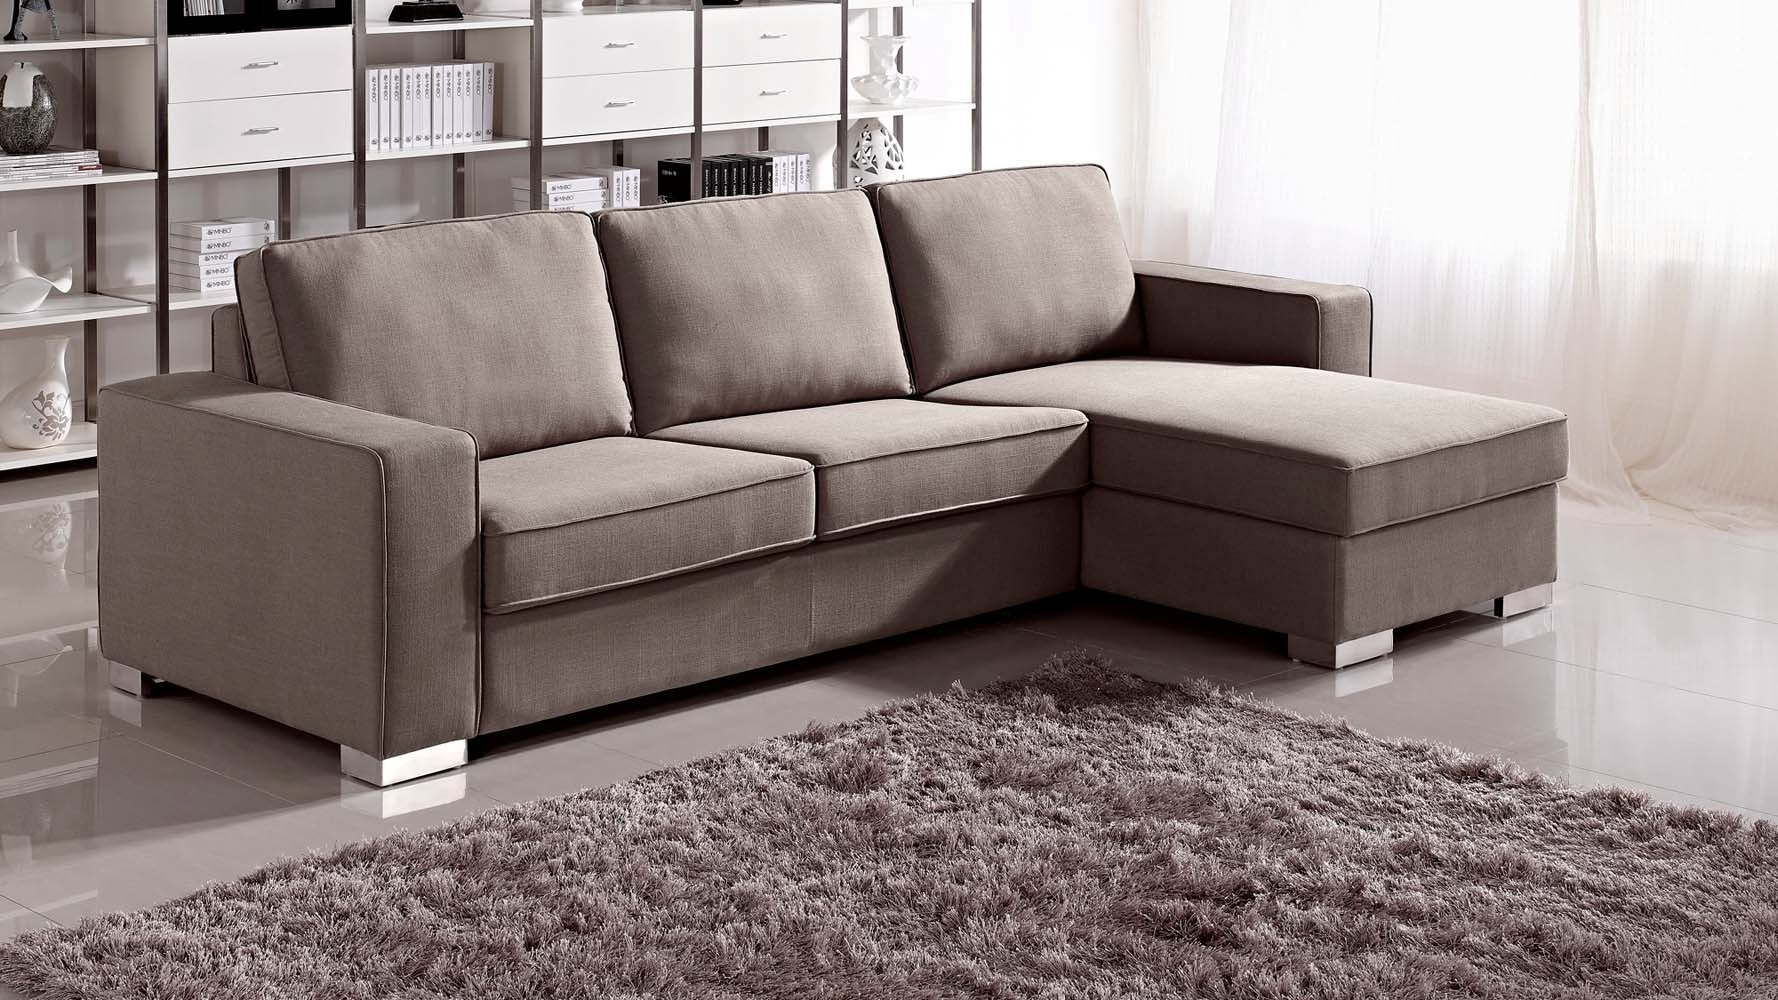 Well Known Mini Sectional Sofas Intended For Sofa : Mini Sectional Sofas Small Sofas Comfortable Small (View 18 of 20)